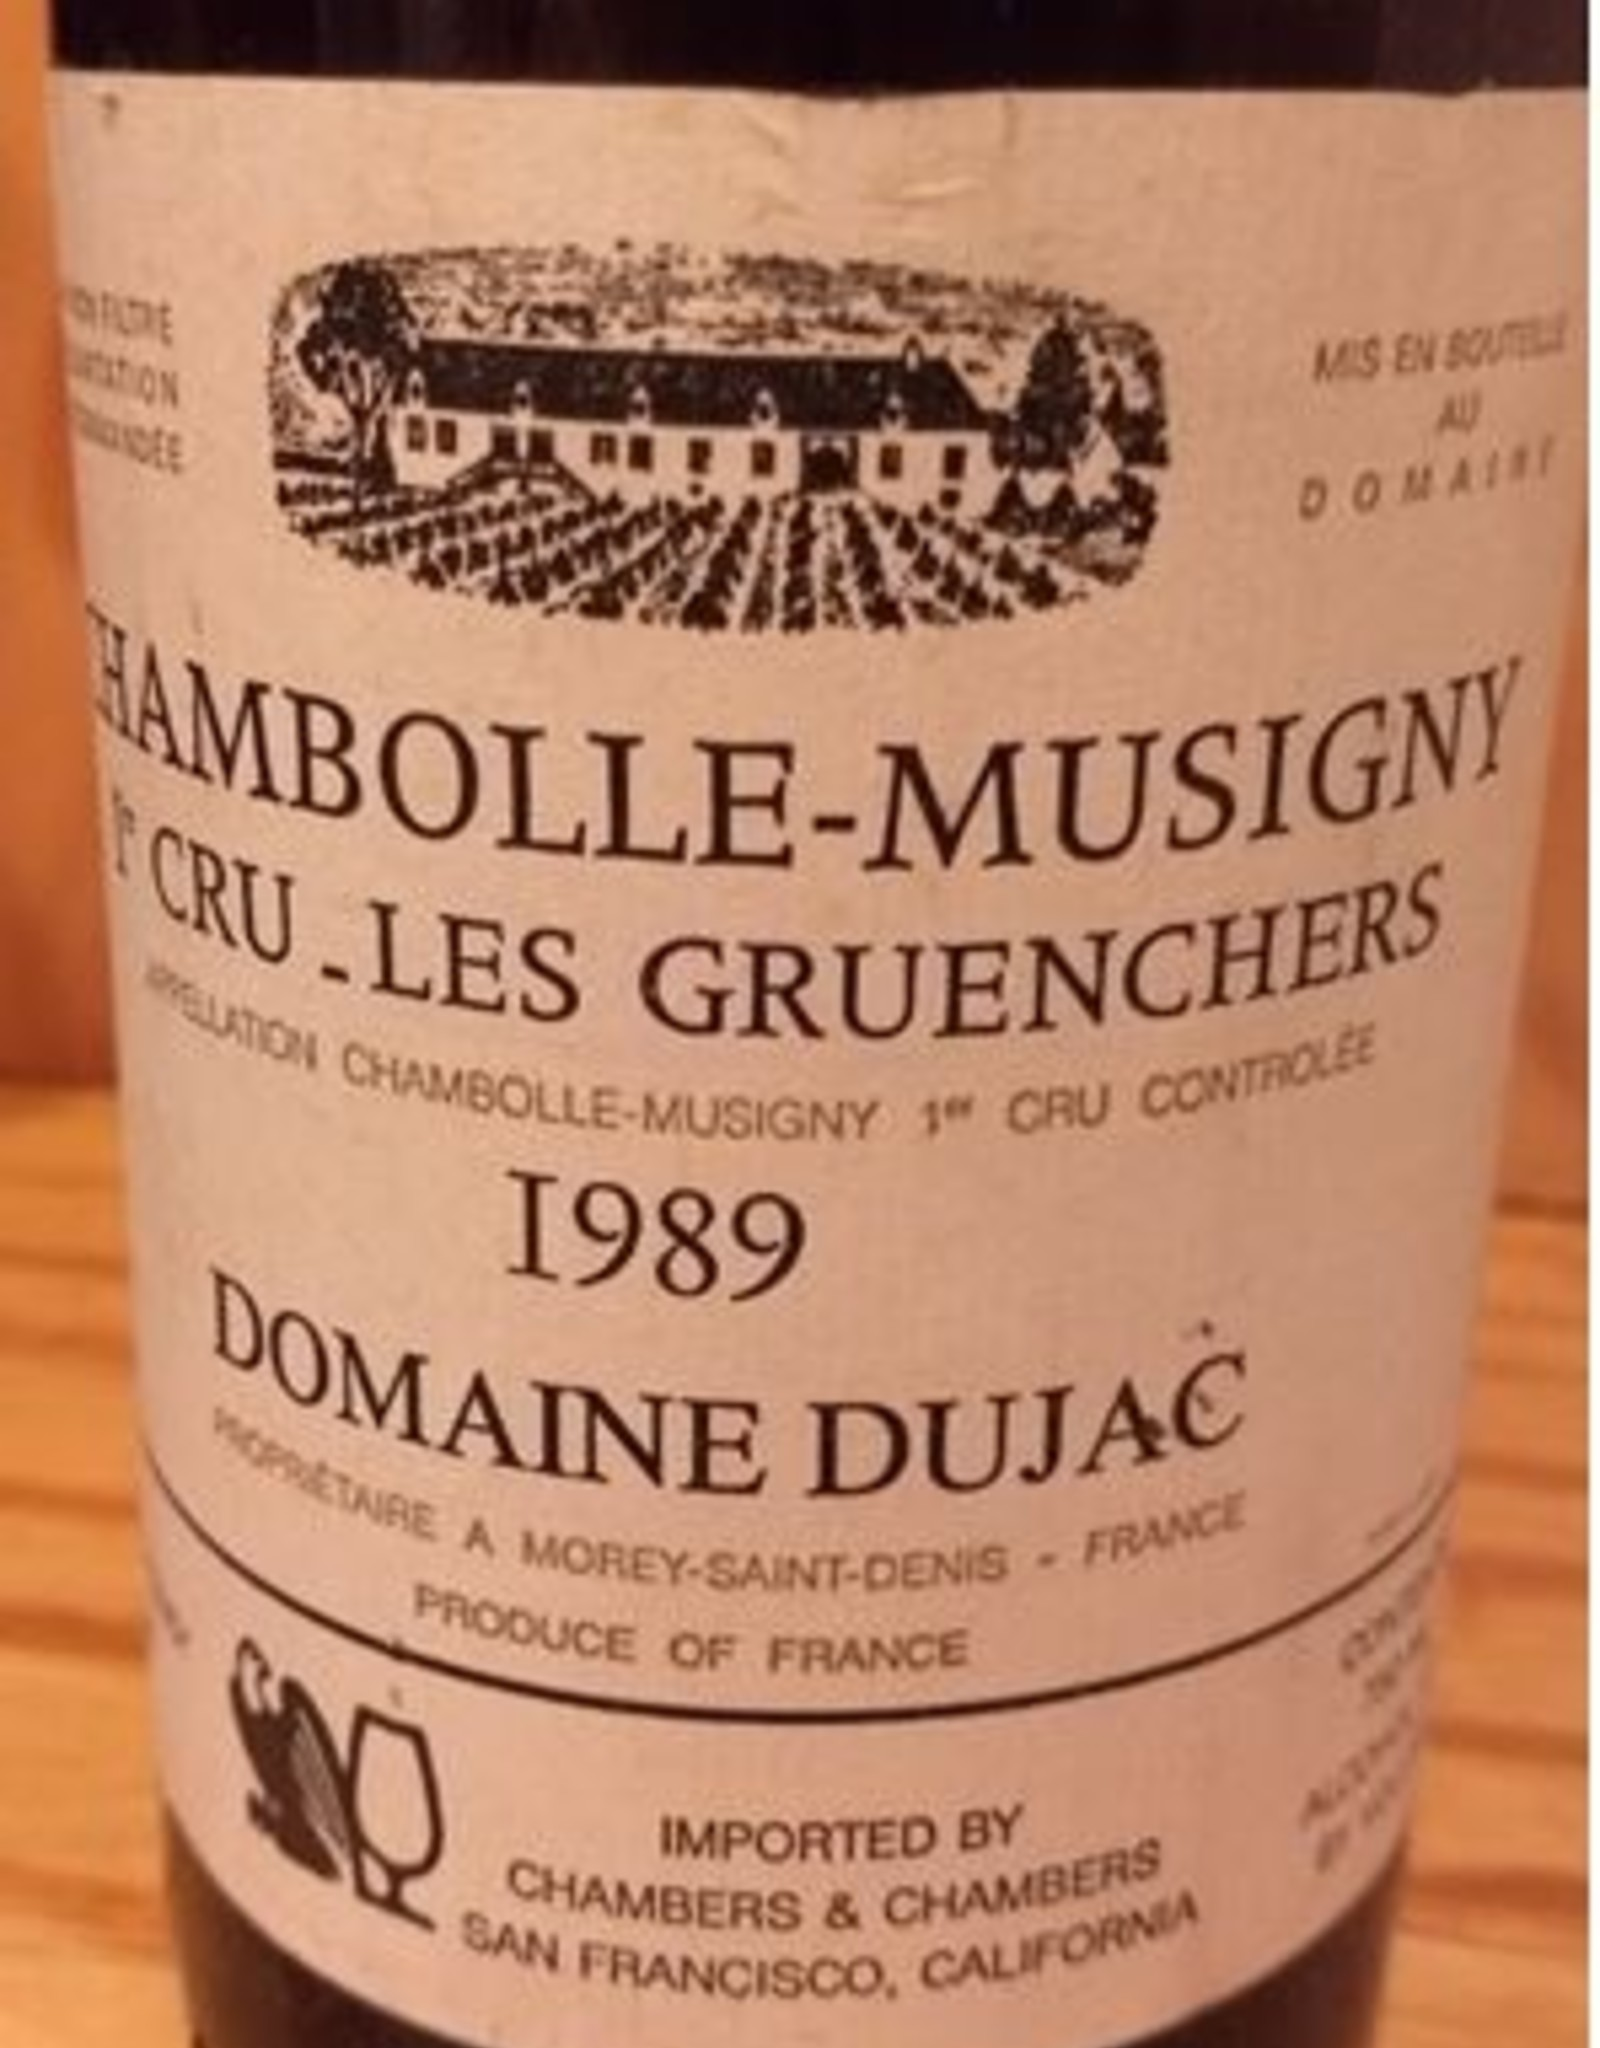 Dujac Chambolle Musigny 1989 Les Gruenchers